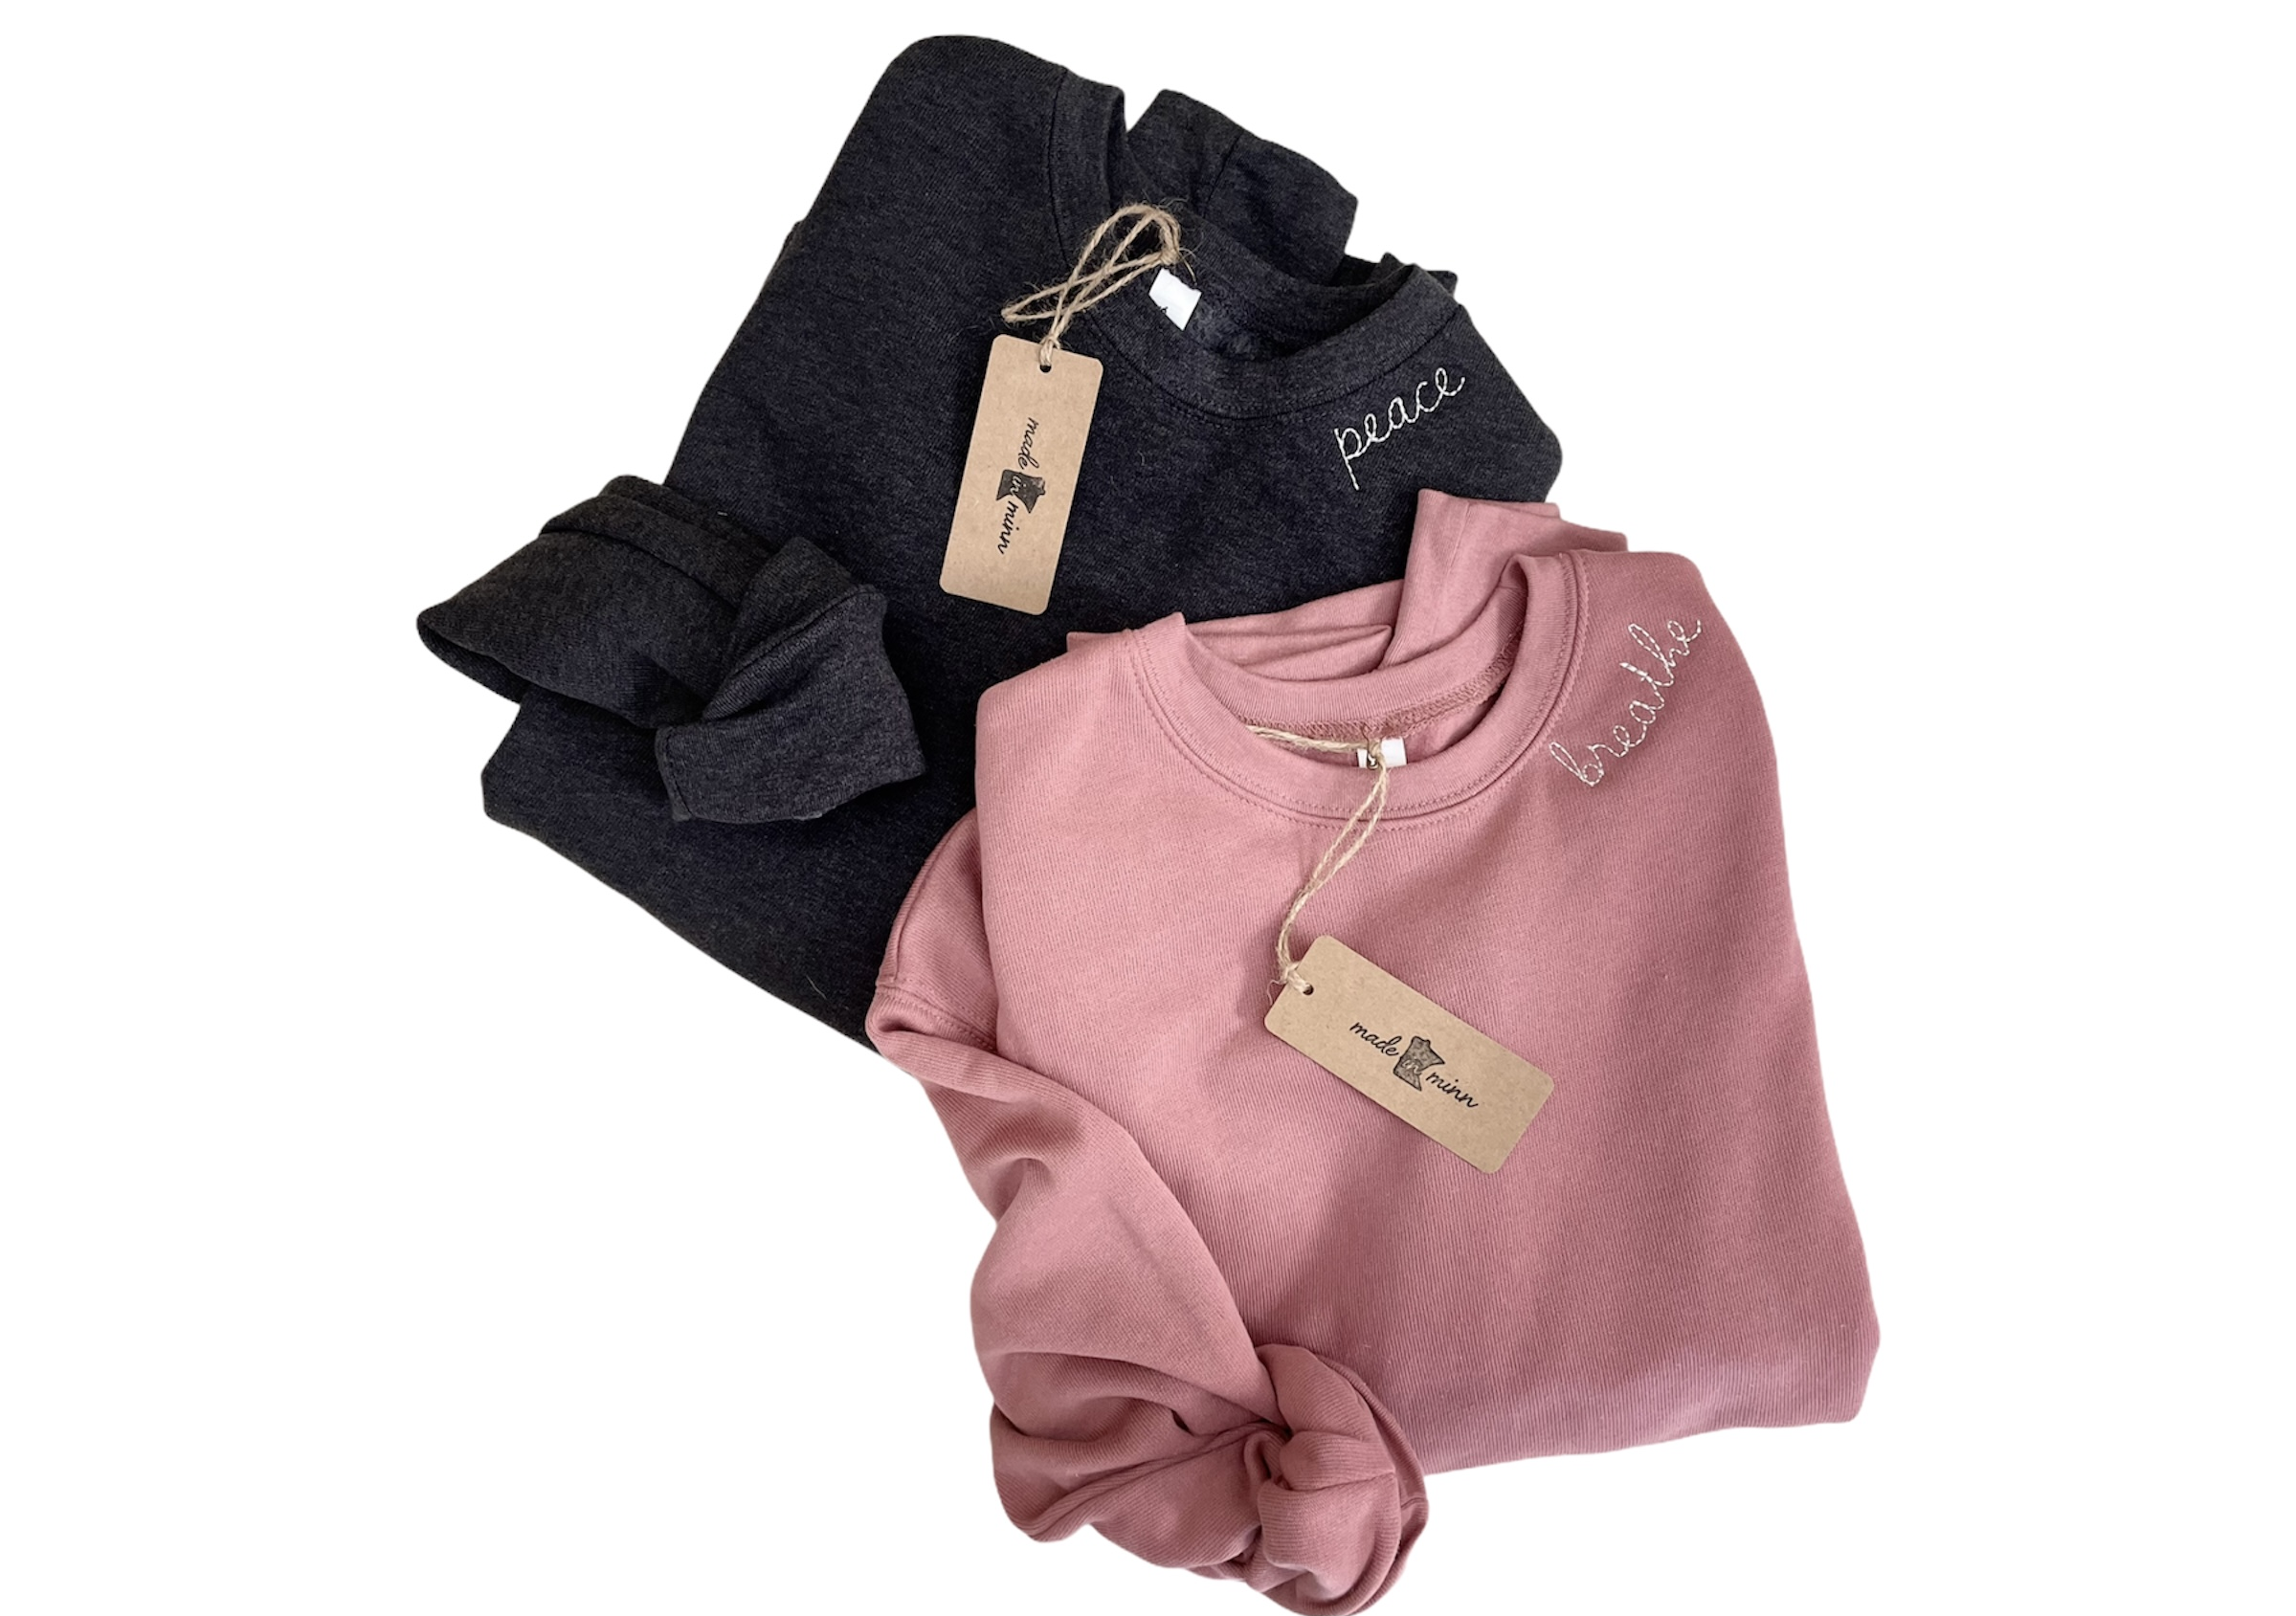 Embroidered Crewneck Sweatshirts, Mauve Sweatshirts, Trendy Embroidery, Around the Collar Embroidery